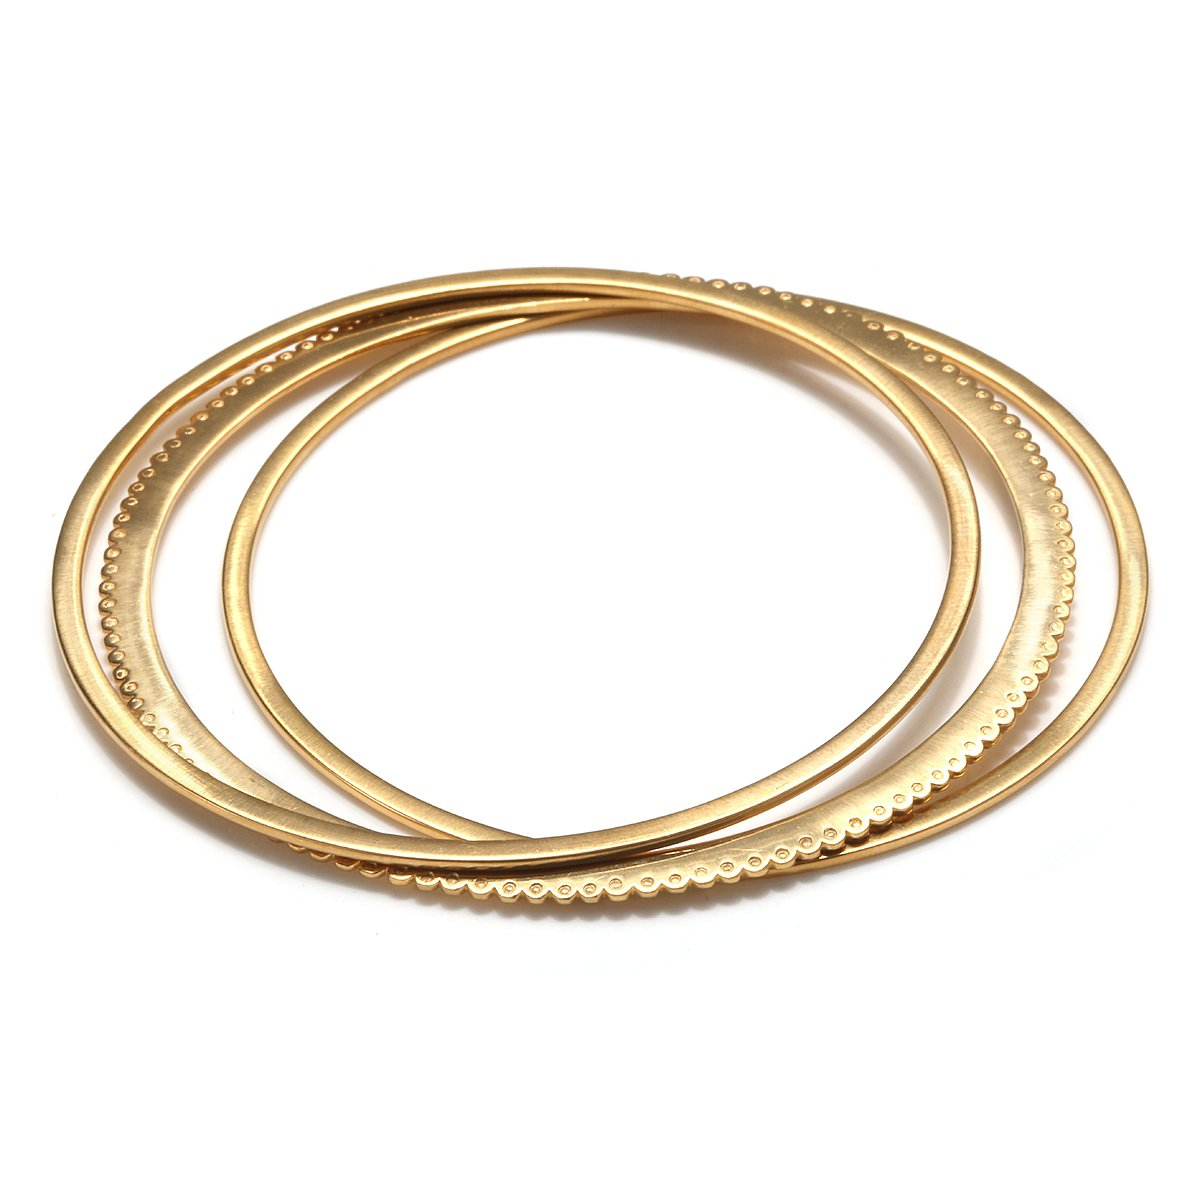 Satya Jewelry Womens Gold Bangle Bracelet Set, One Size BG4-SET